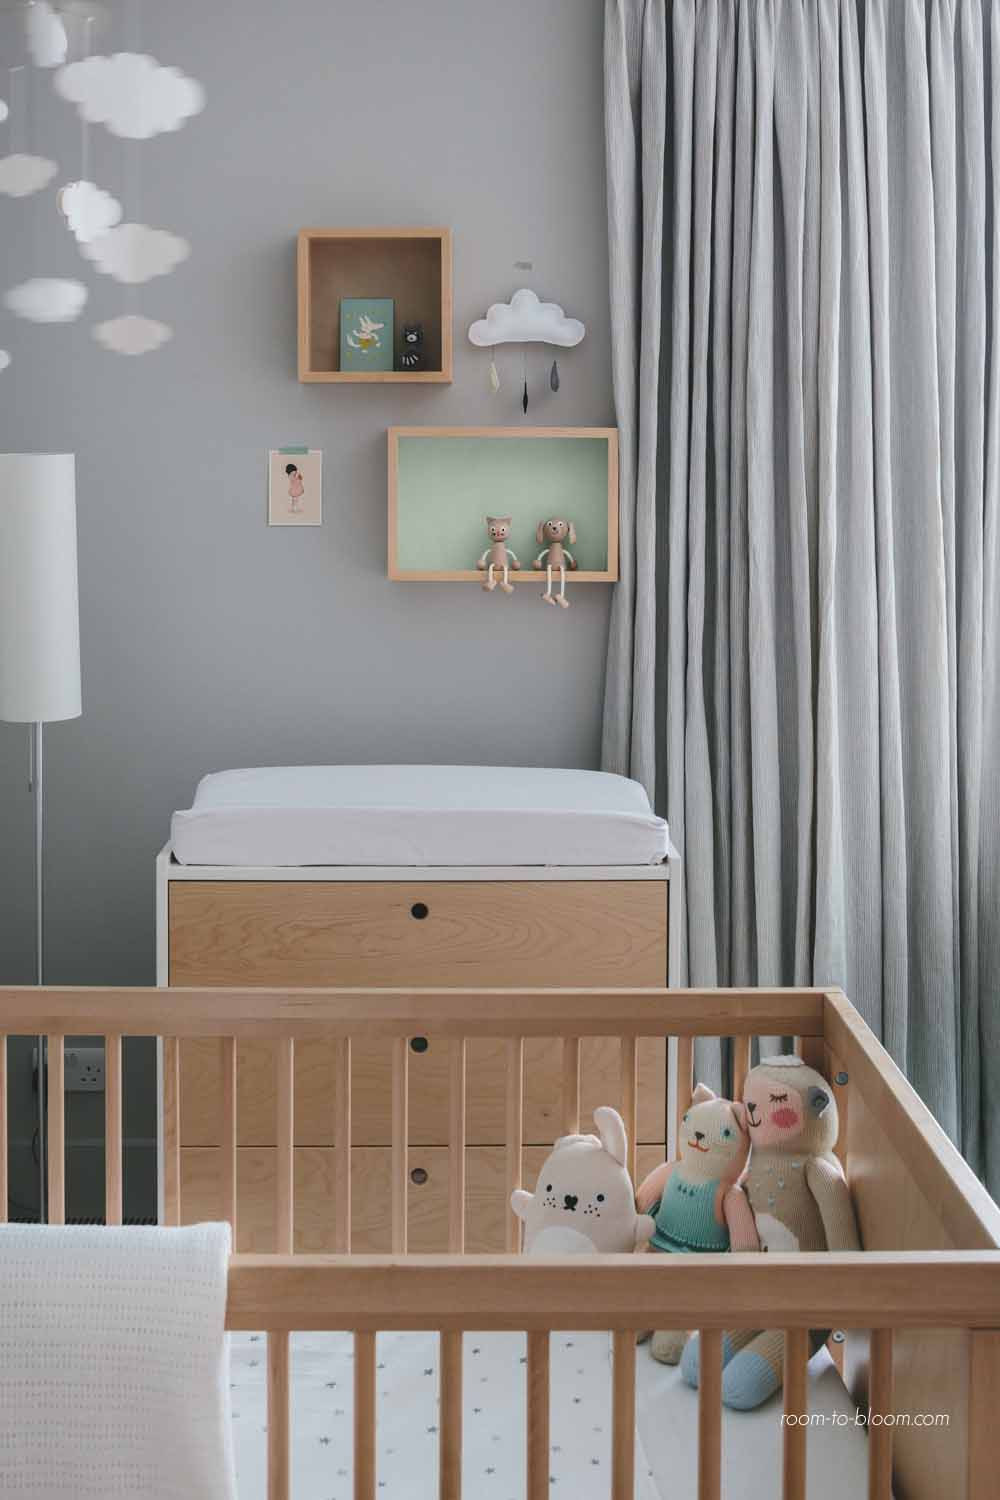 Interior design for children's rooms